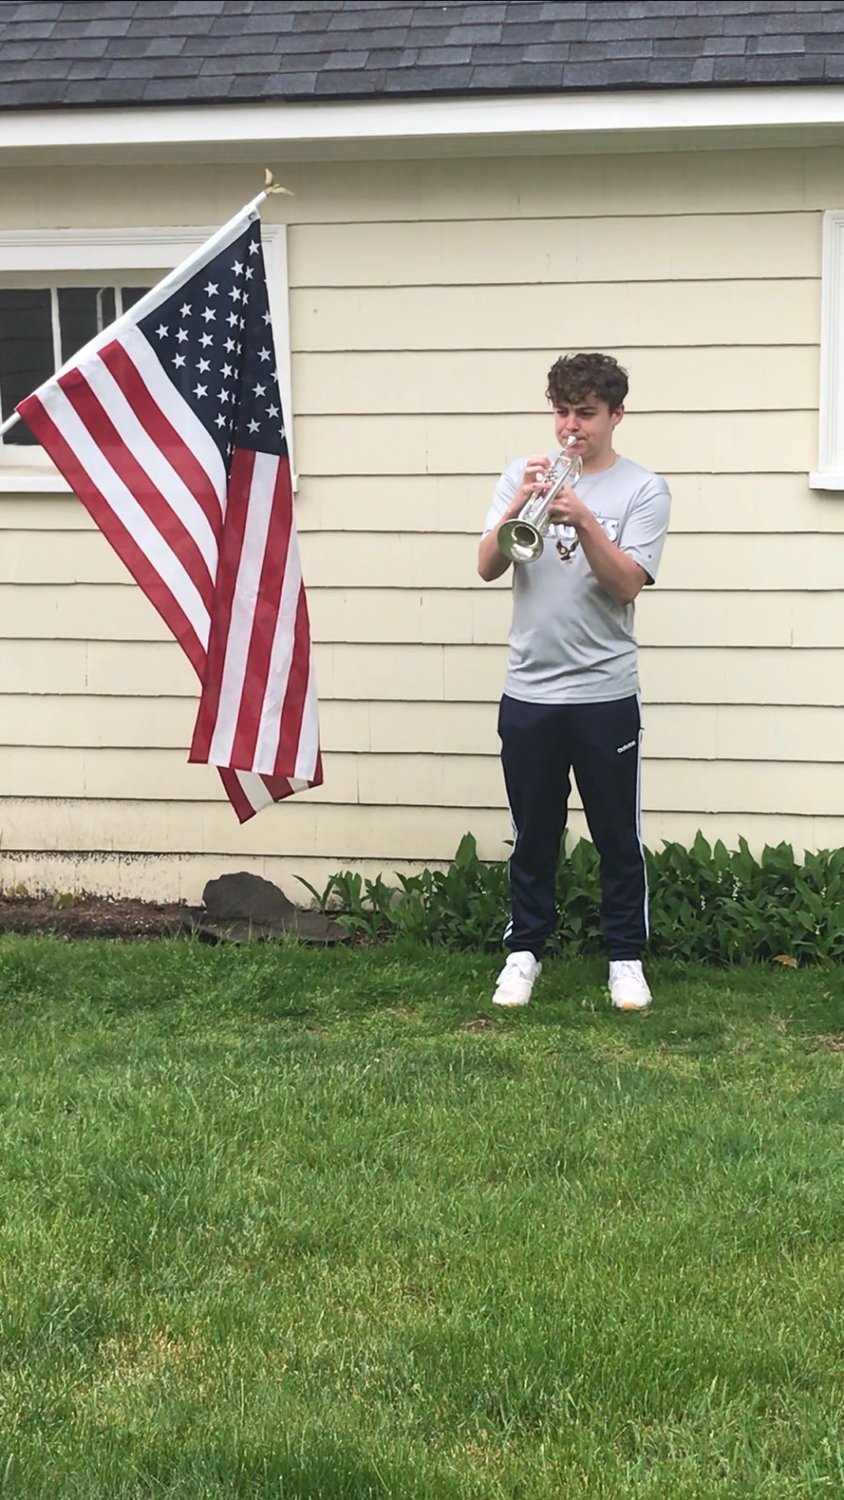 Barrington High School's Daniel Enos plays a tribute to fallen soldiers on Memorial Day.